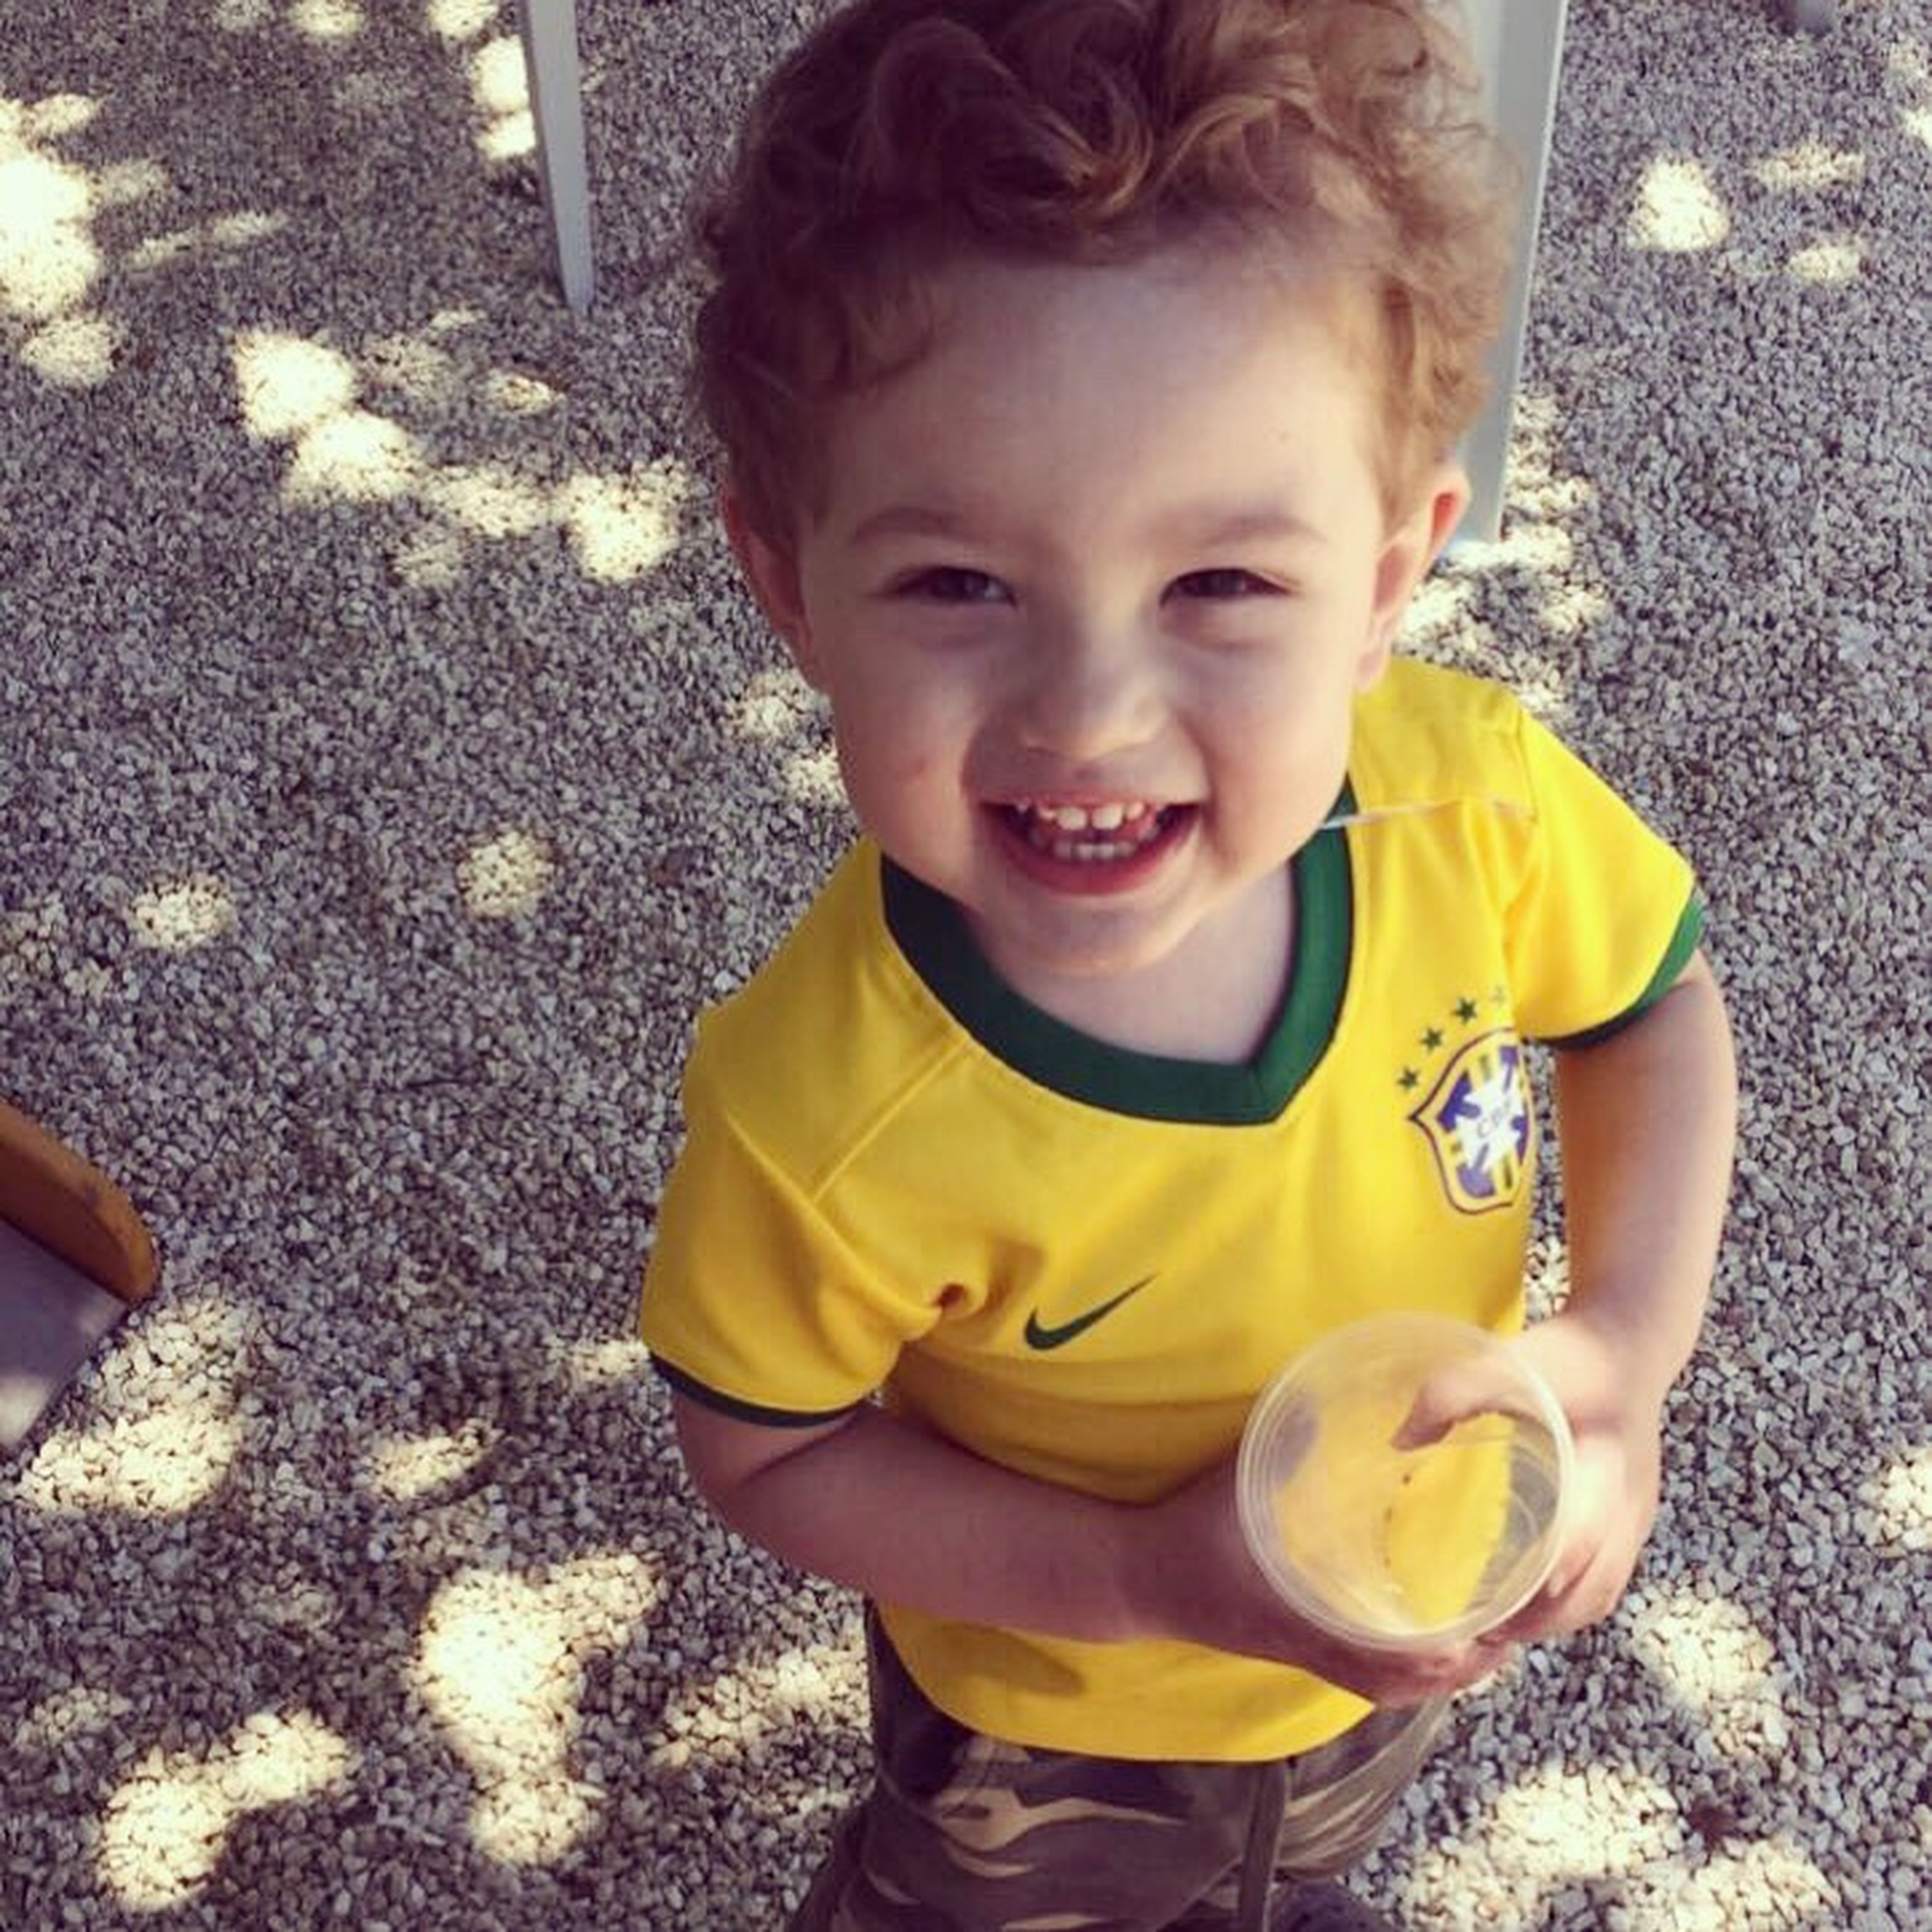 childhood, innocence, portrait, looking at camera, one person, yellow, happiness, outdoors, smiling, food, playing, real people, day, people, close-up, cheerful